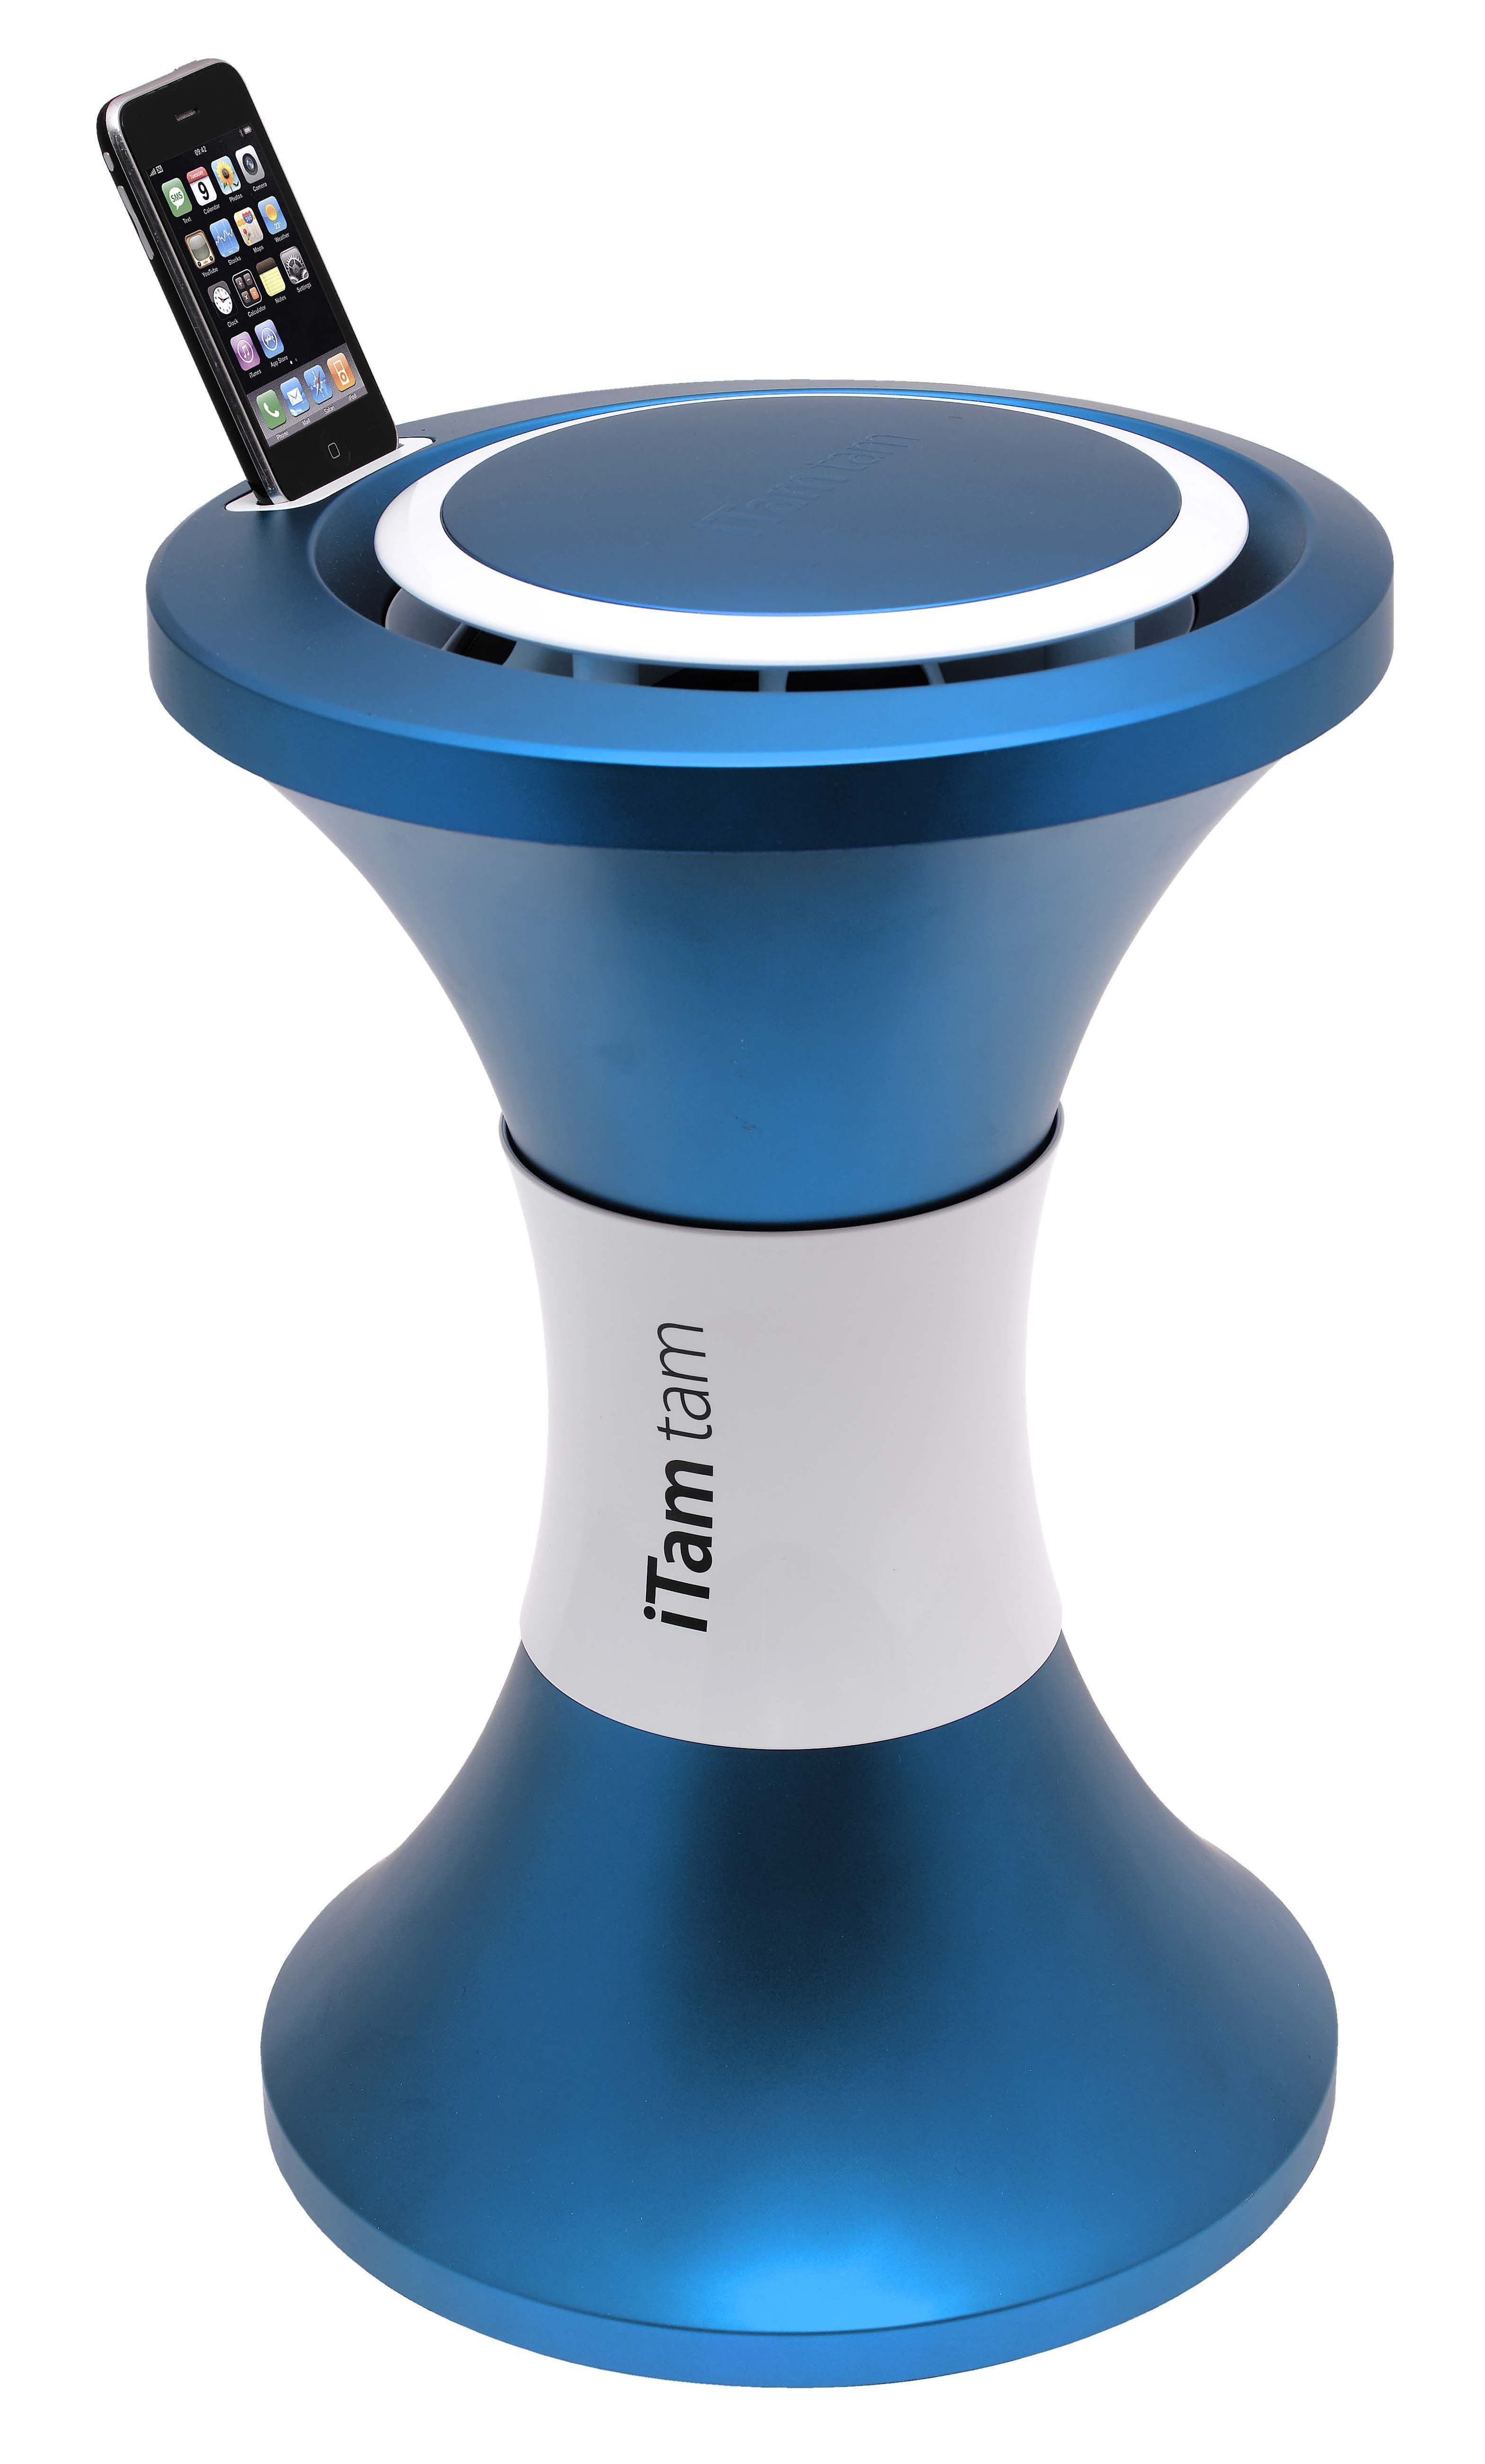 Furniture - Teen furniture - iTamtam Vogue Dock ipod/iphone - / portable iPod dock by Stamp Edition - Blue - Metallic ABS